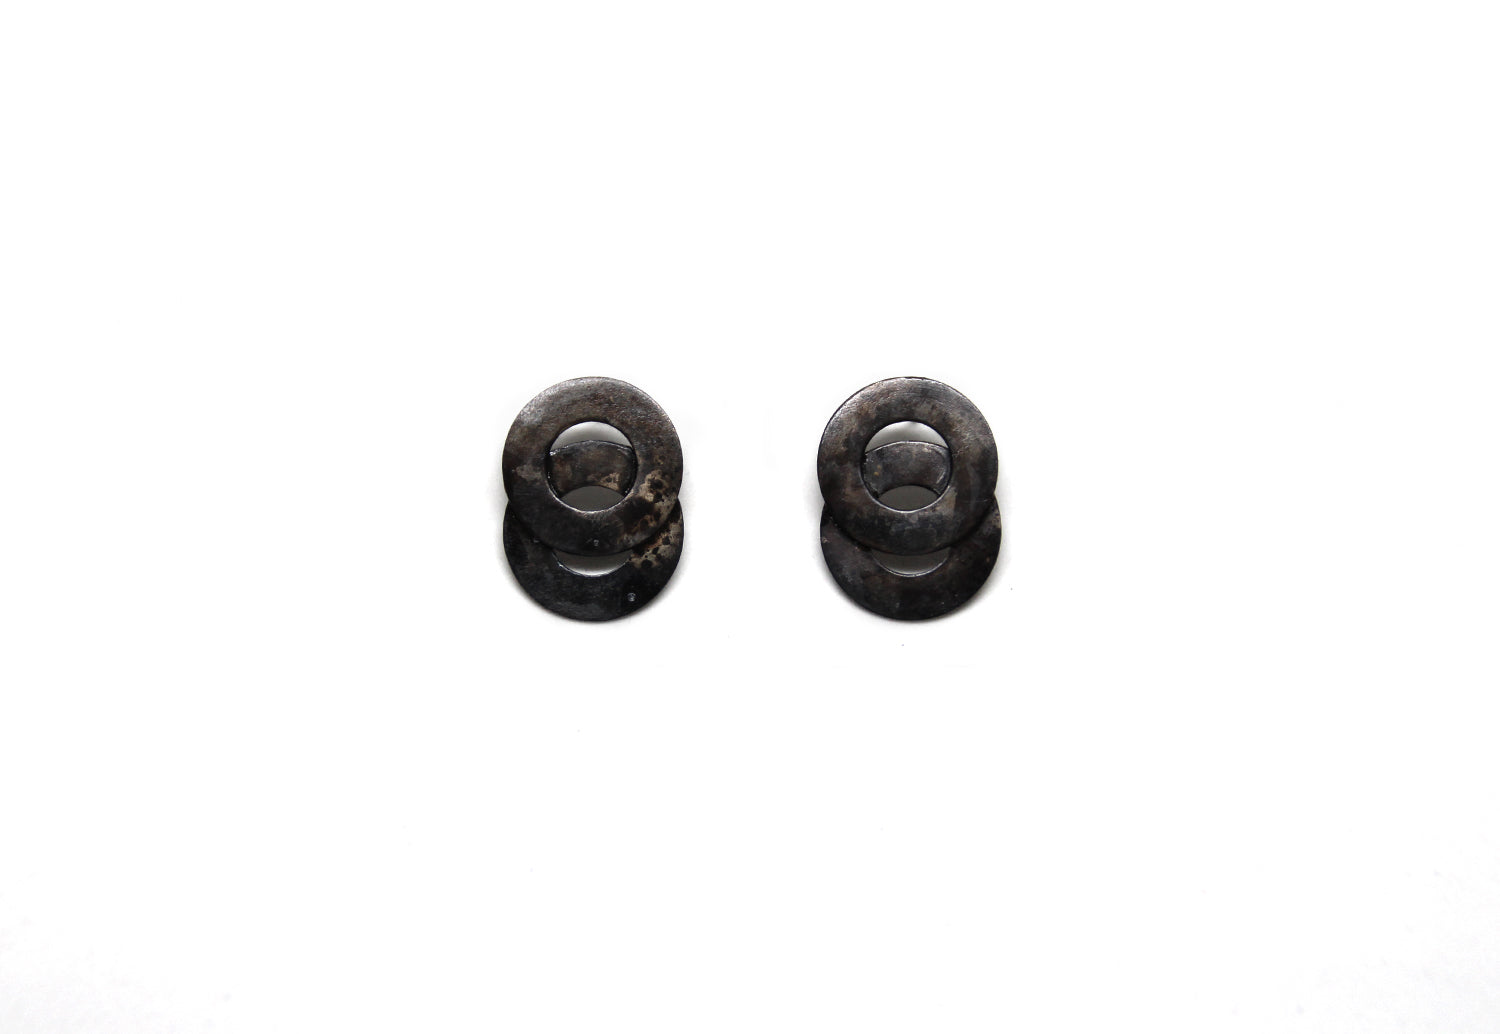 llayers jewelry earrings loop black disks boucles oreilles cercles